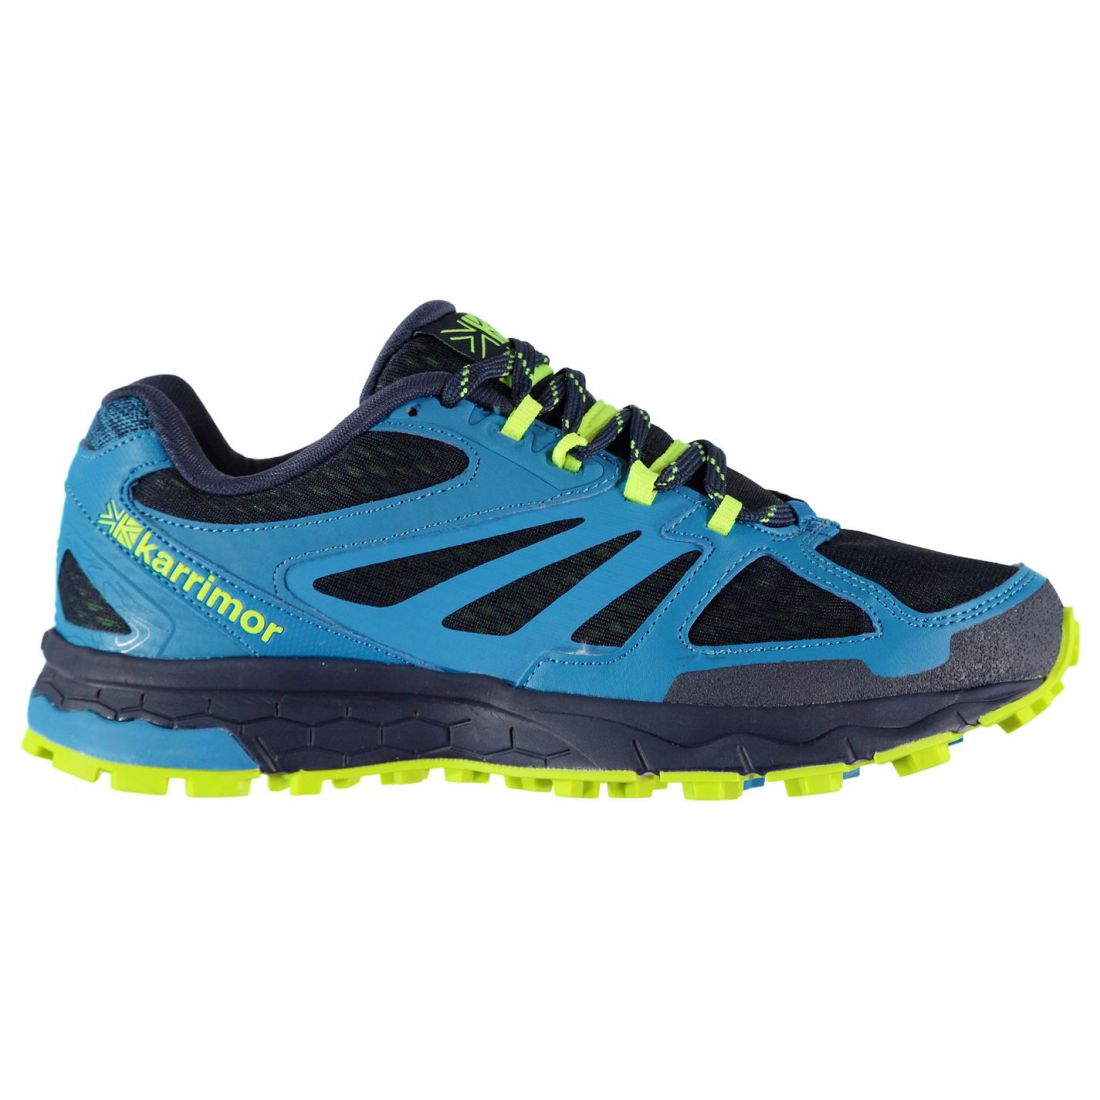 Details about Karrimor Mens Tempo 5 Trail Running Shoes Lace Up Lightweight  Mesh Upper 6e0602fdbf